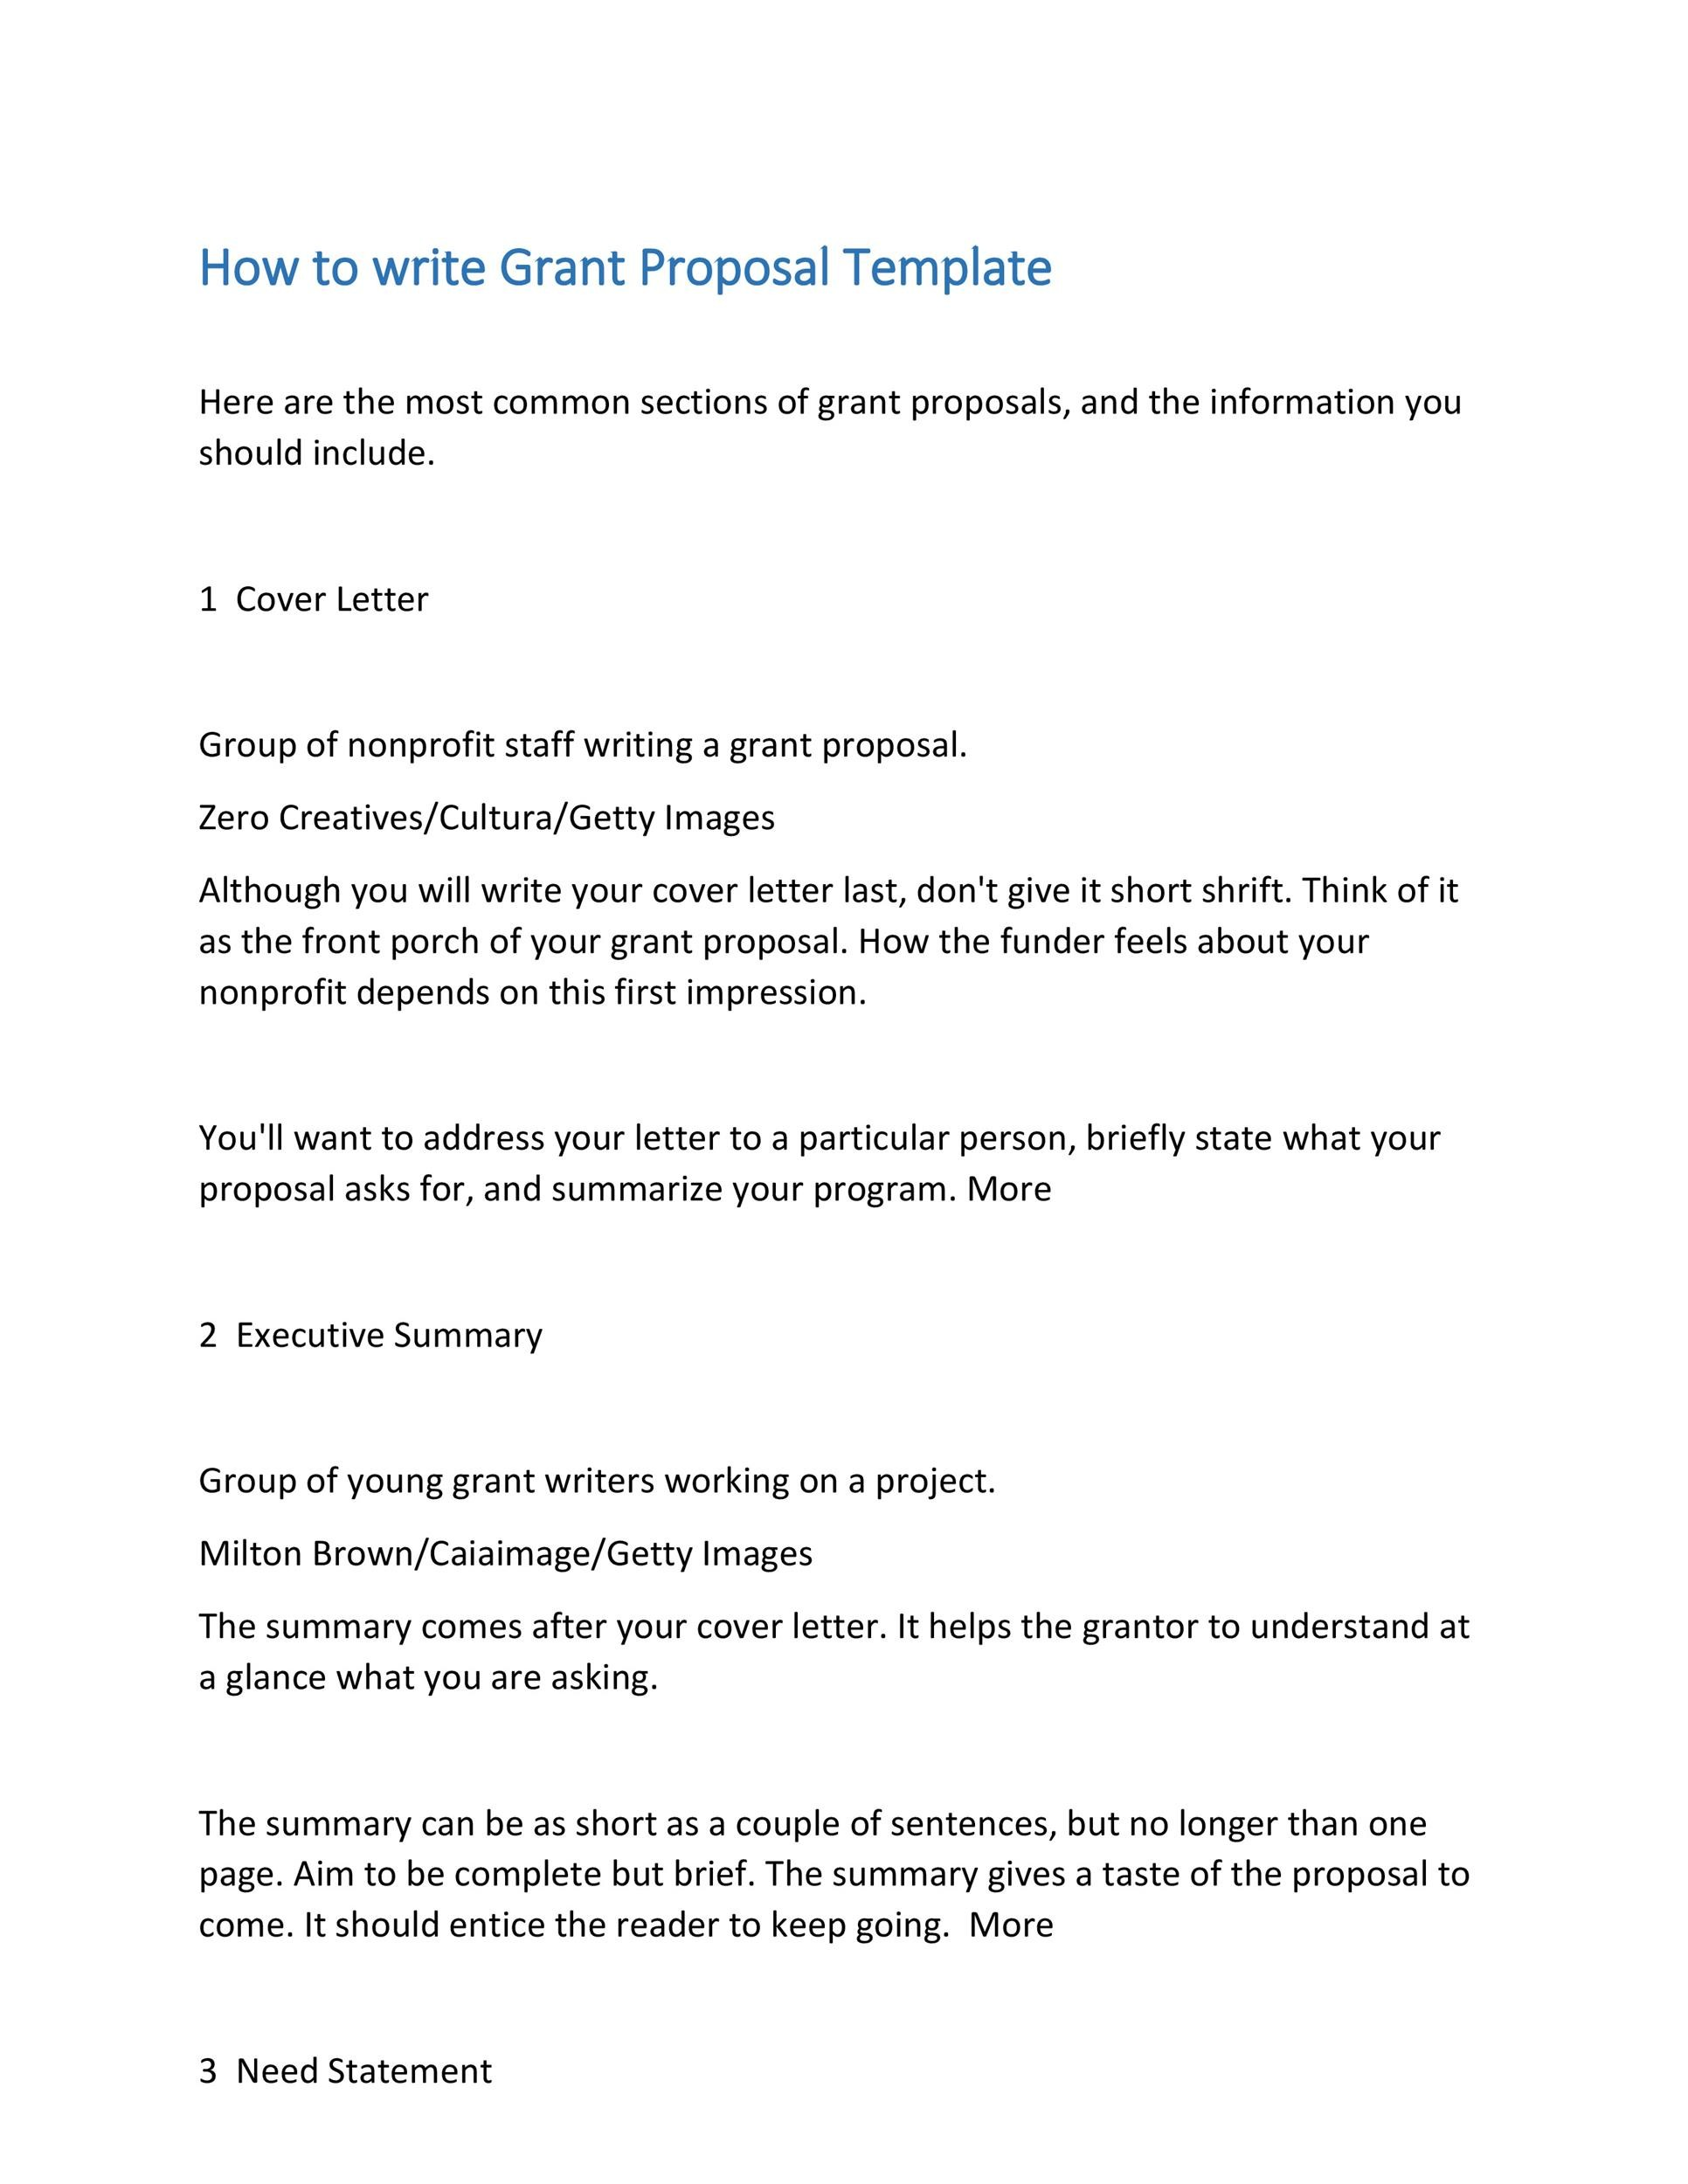 Grant proposal grant proposal templates nsf nonprofit research grant proposal katherine harper sample grant proposal proposal spiritdancerdesigns Gallery